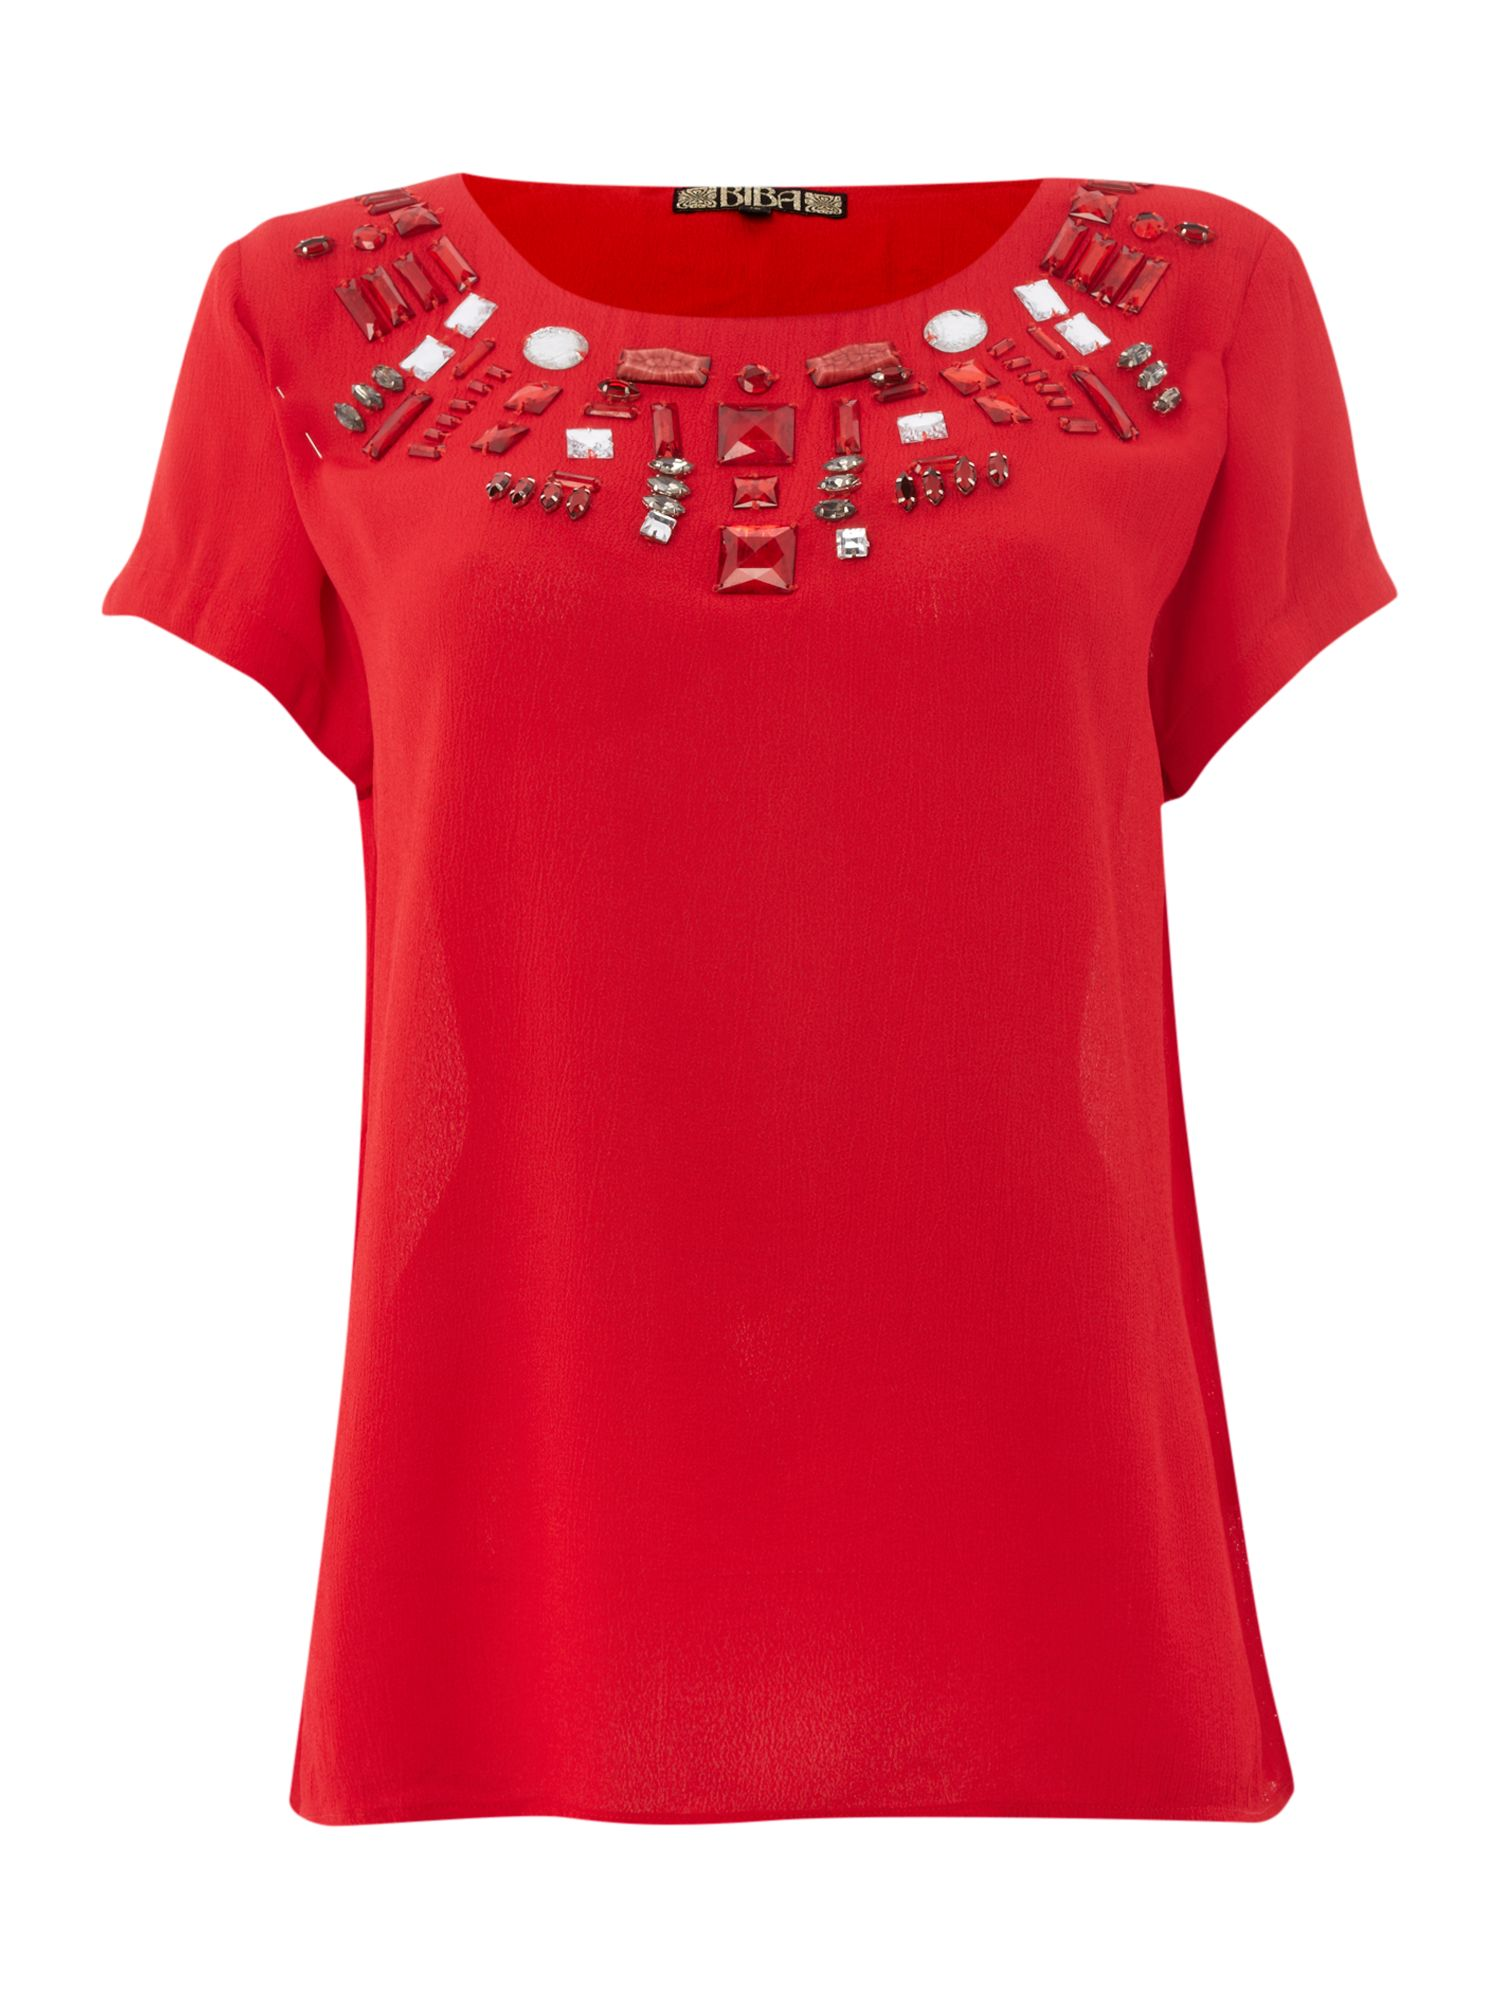 Gem collar top